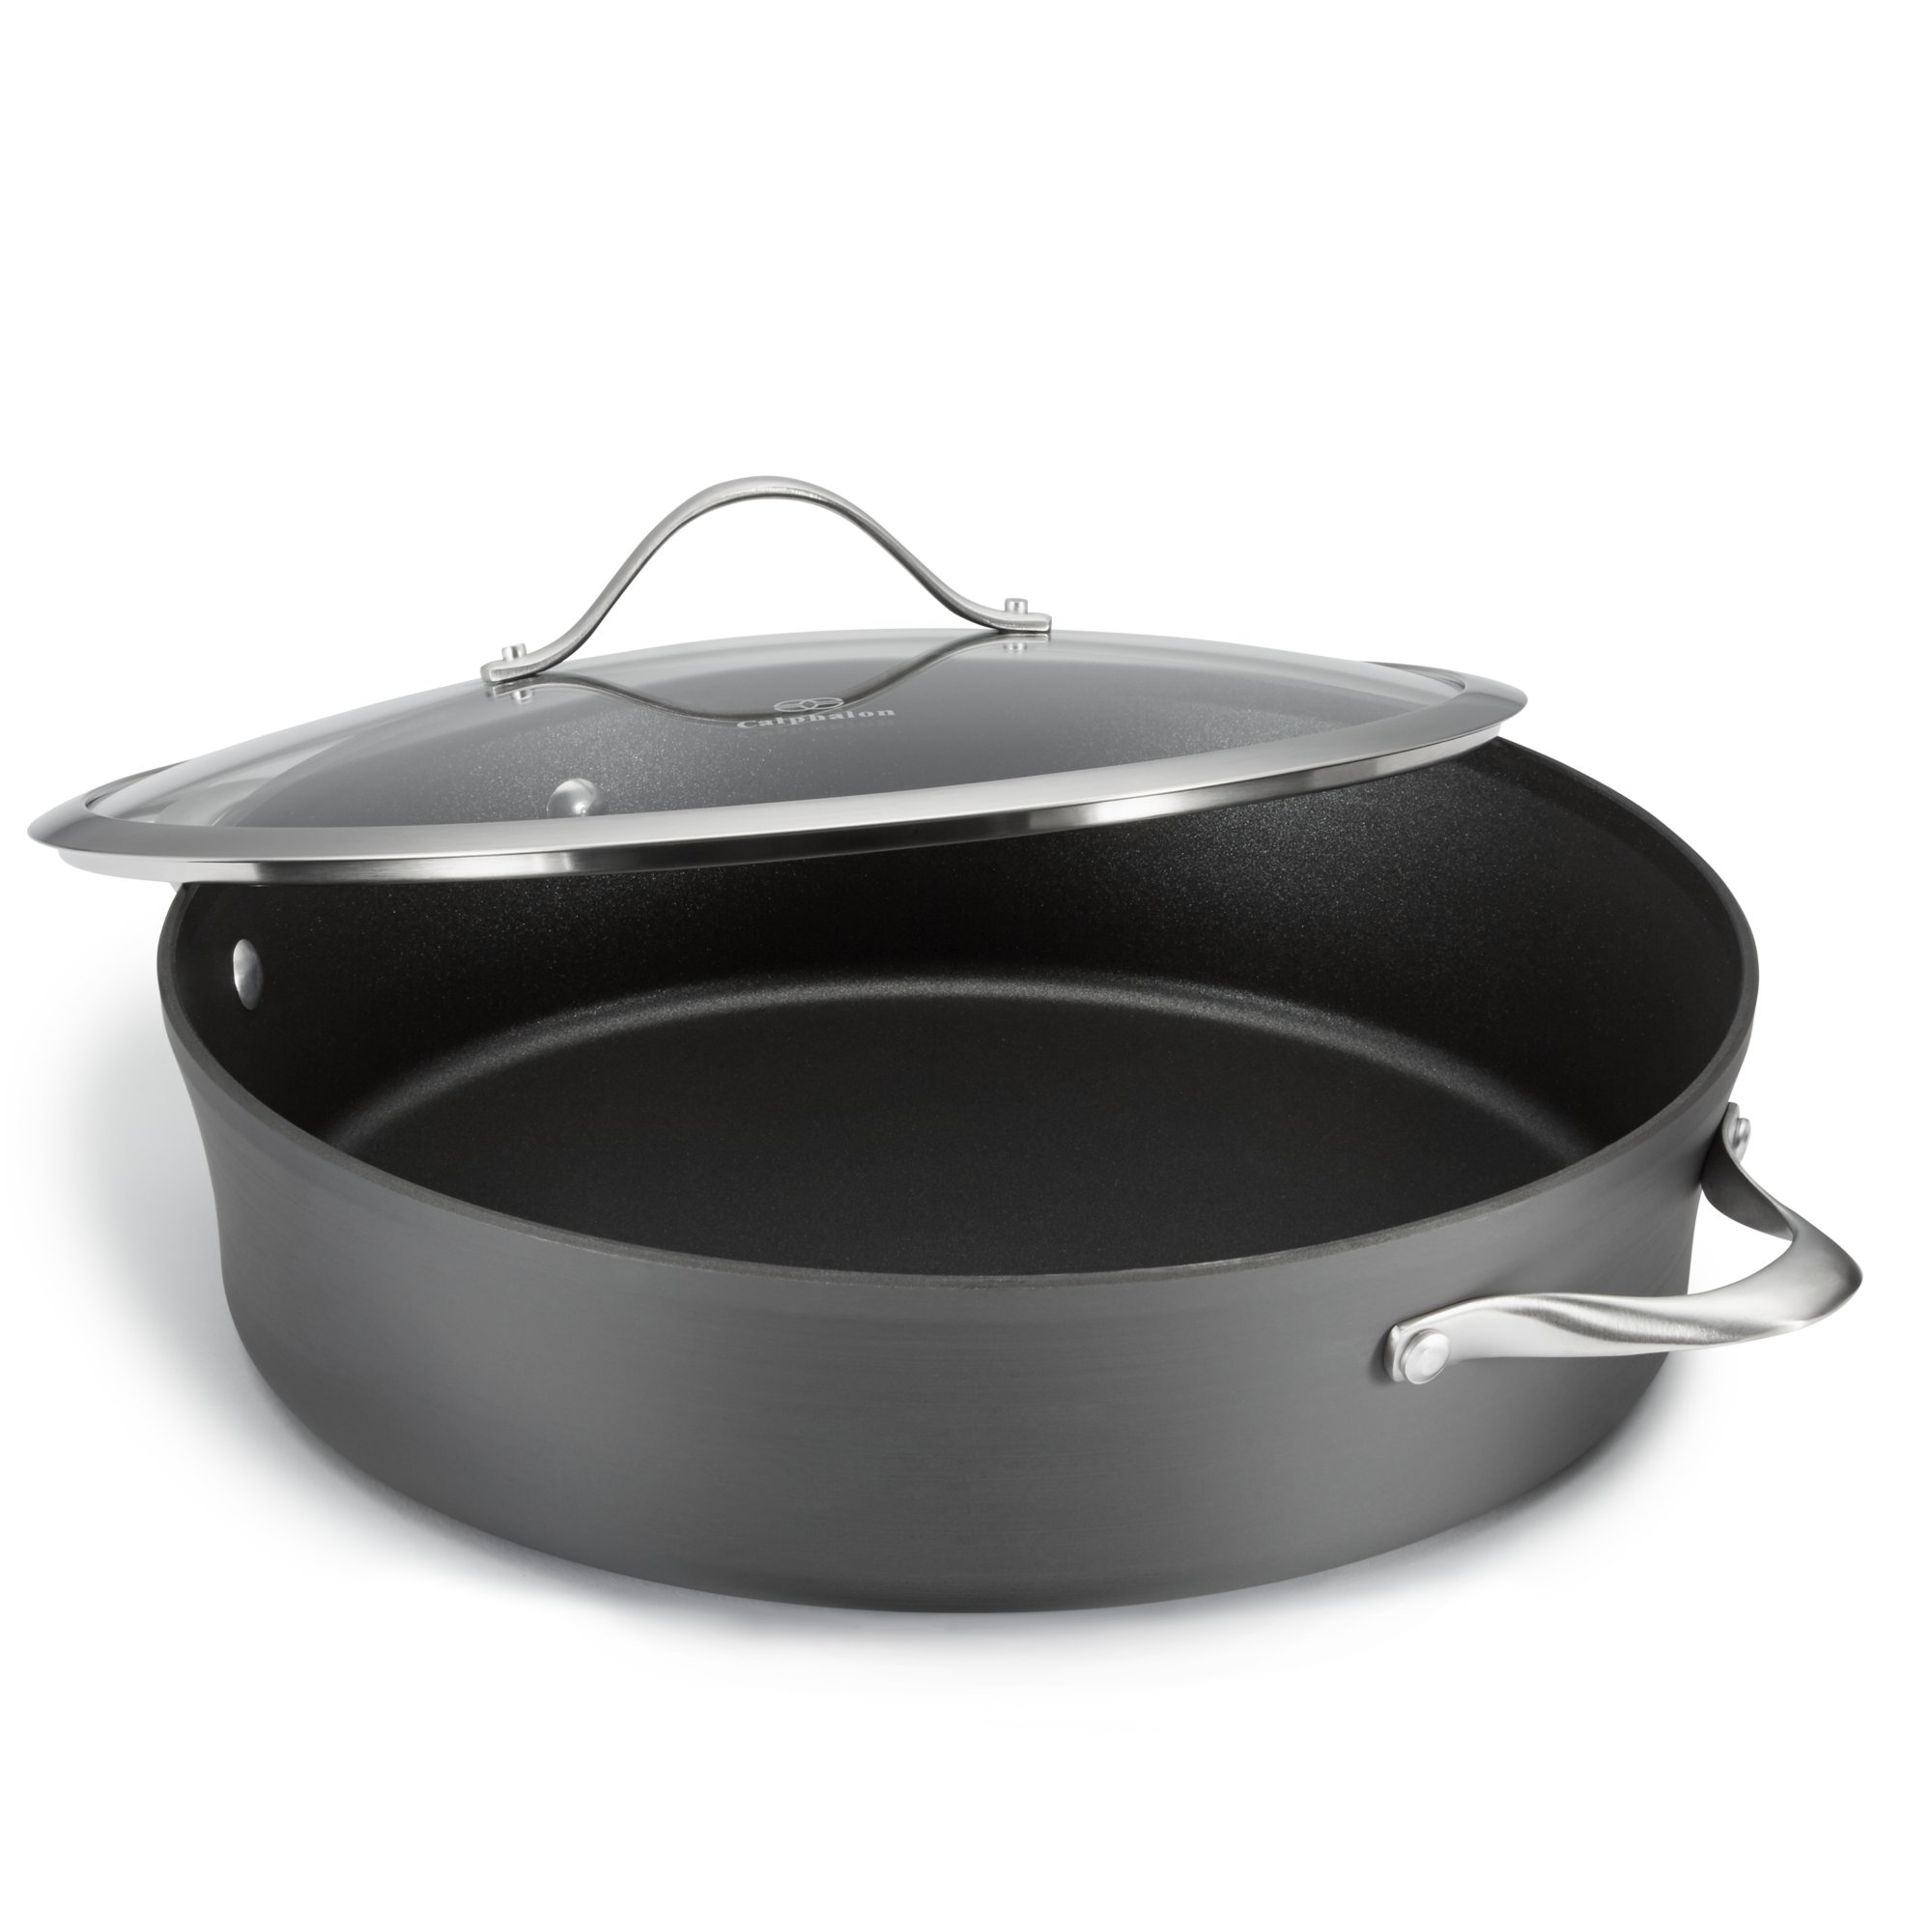 Calphalon Contemporary Nonstick 7 Qt Sauteuse With Cover